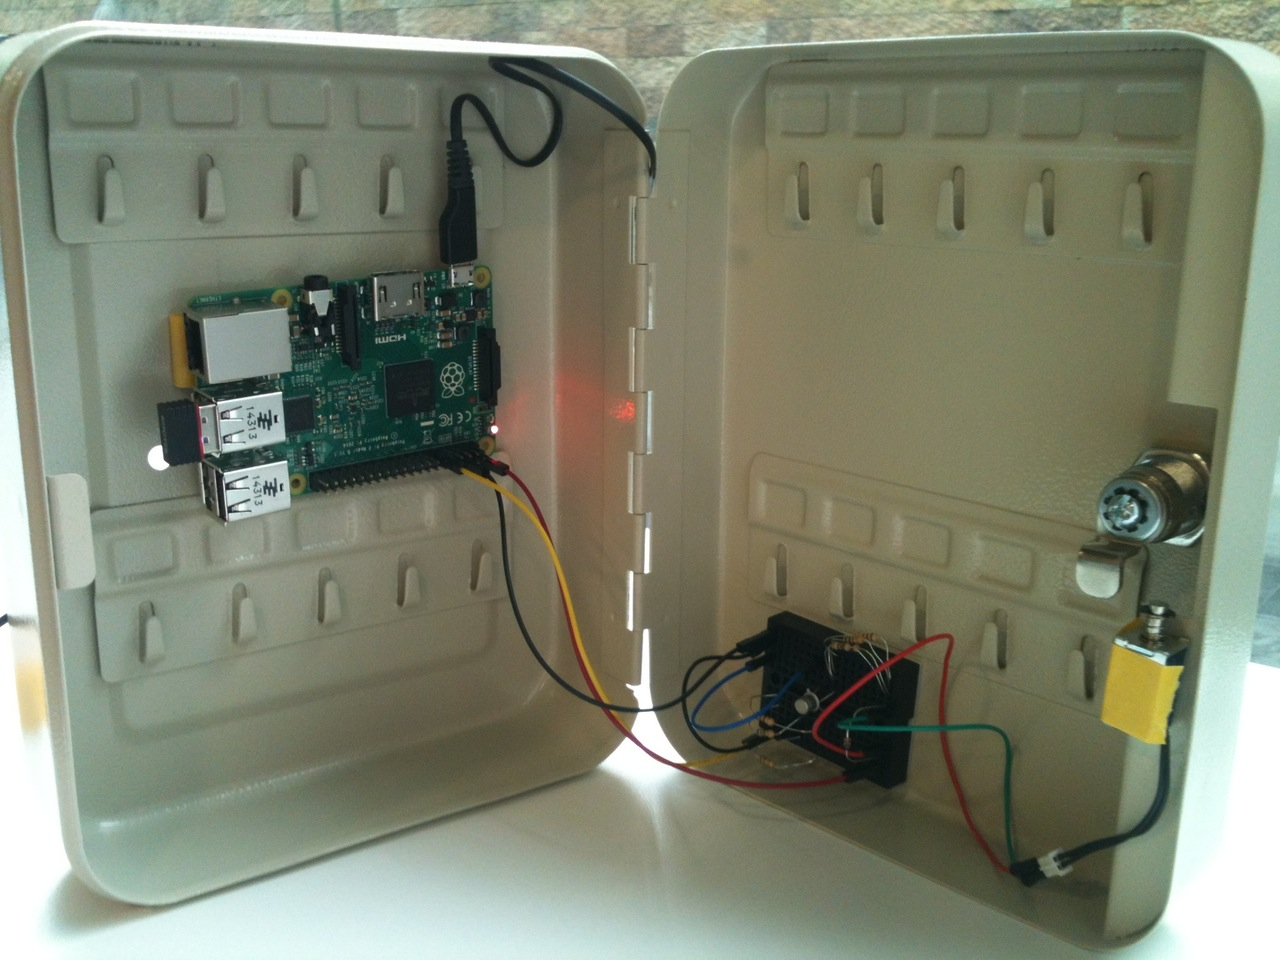 Two factor authentication safe deposit box - Raspberry Pi